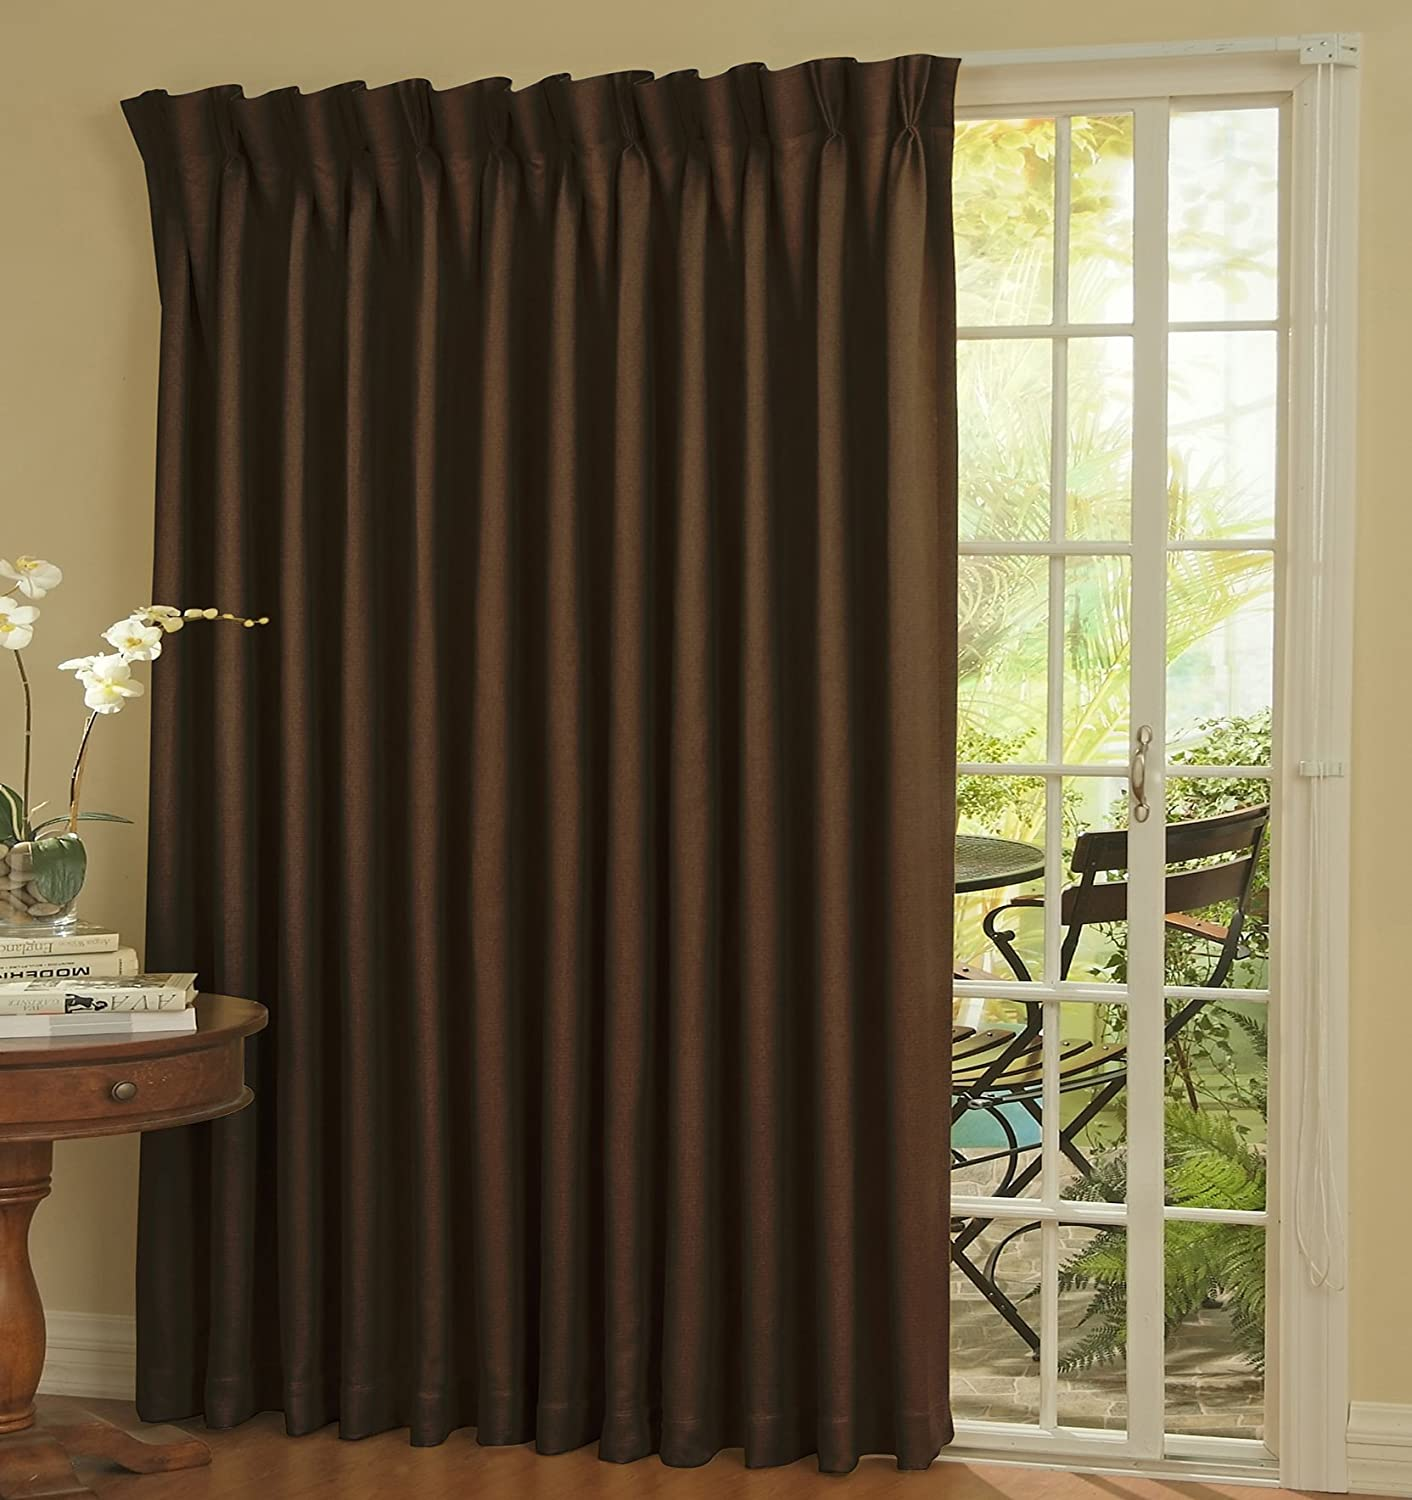 Amazon.com: Eclipse Thermal Blackout Patio Door Curtain Panel 100\